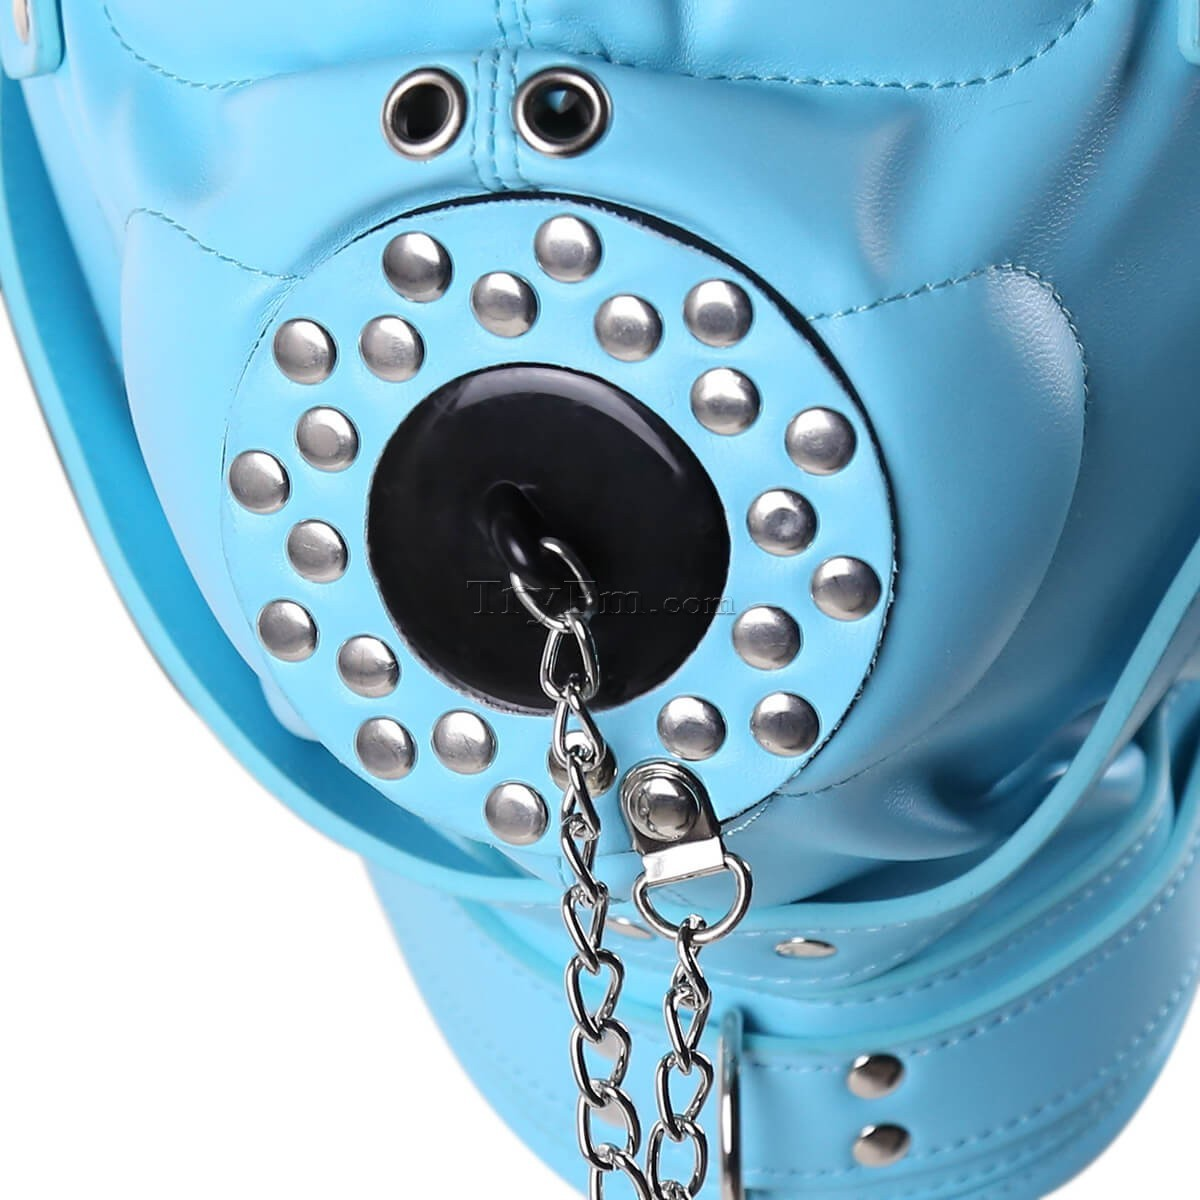 5-Sensory-Deprivation-Hood-with-Open-Mouth-Gag13.jpg